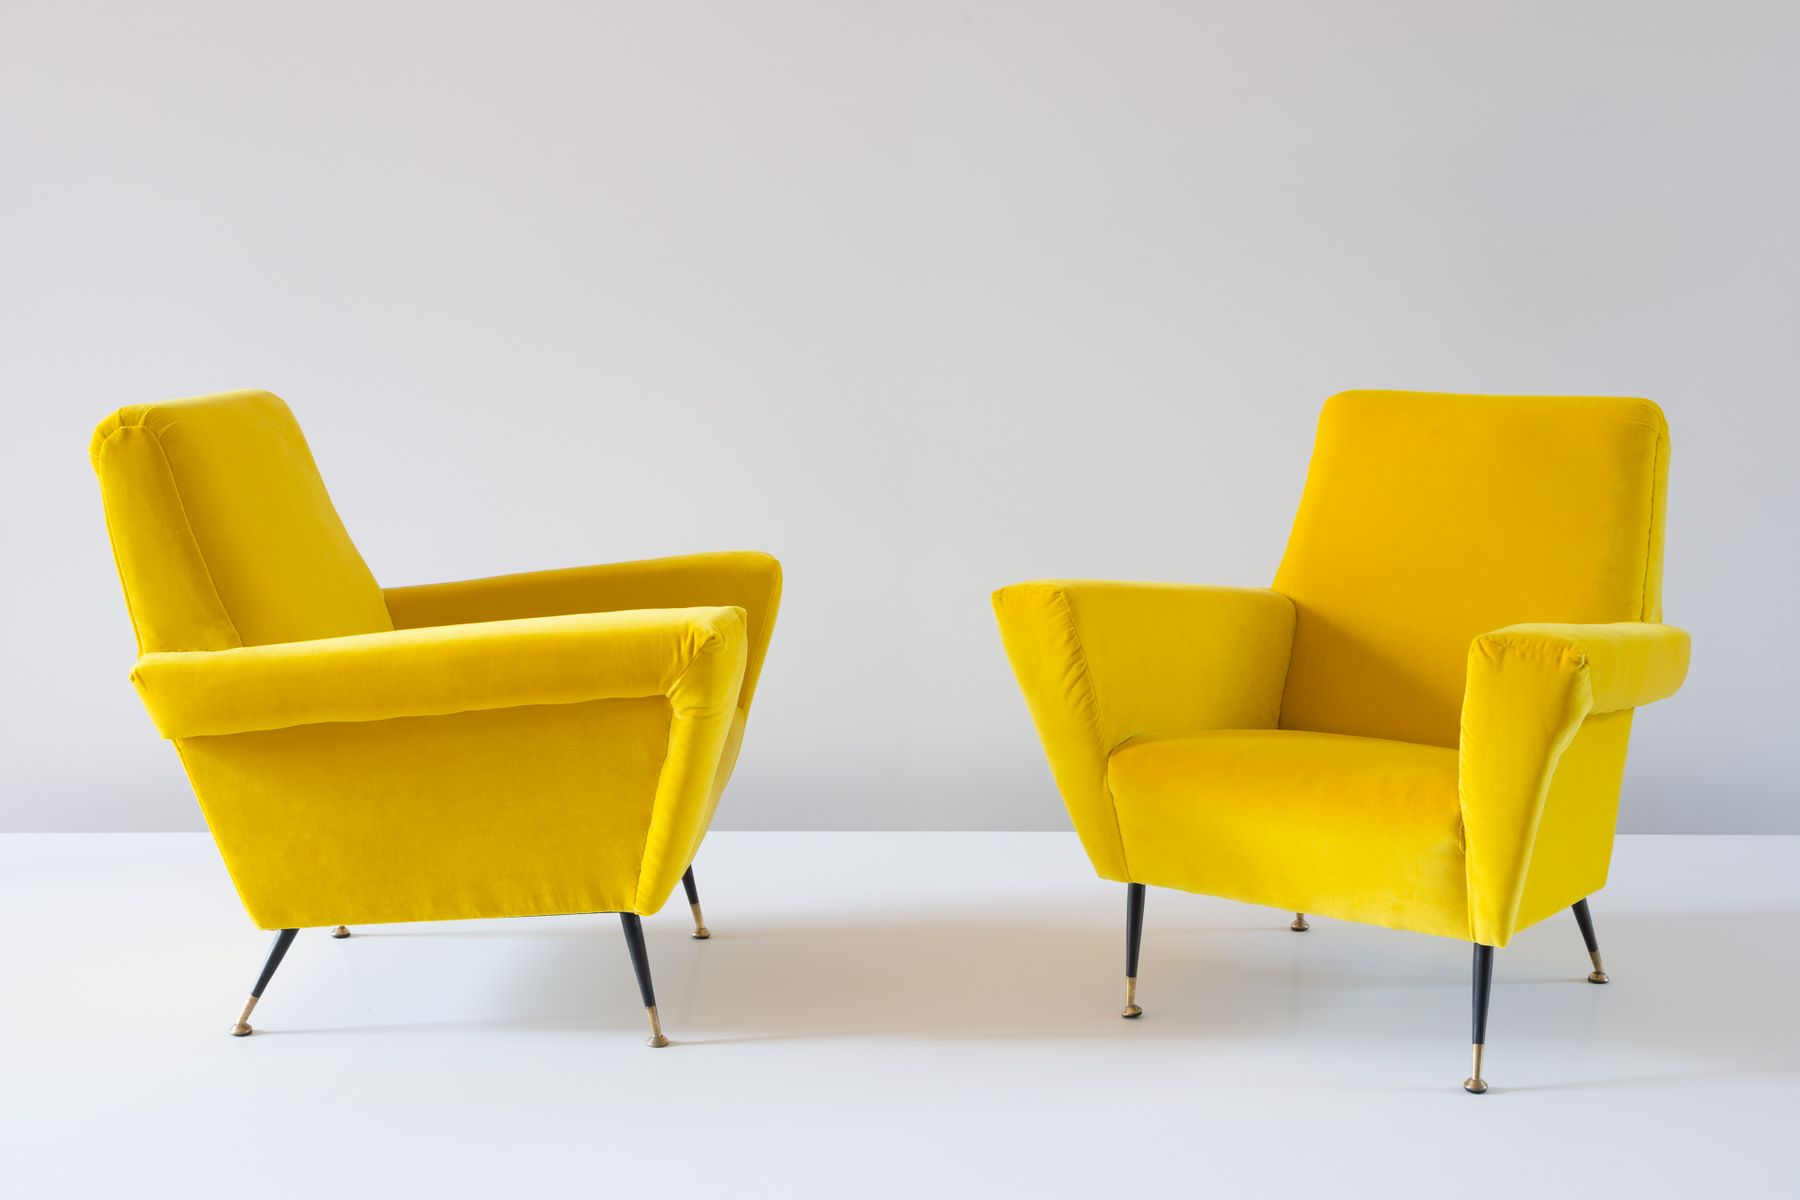 fauteuils vintage en velours jaune italie 1950s set de. Black Bedroom Furniture Sets. Home Design Ideas